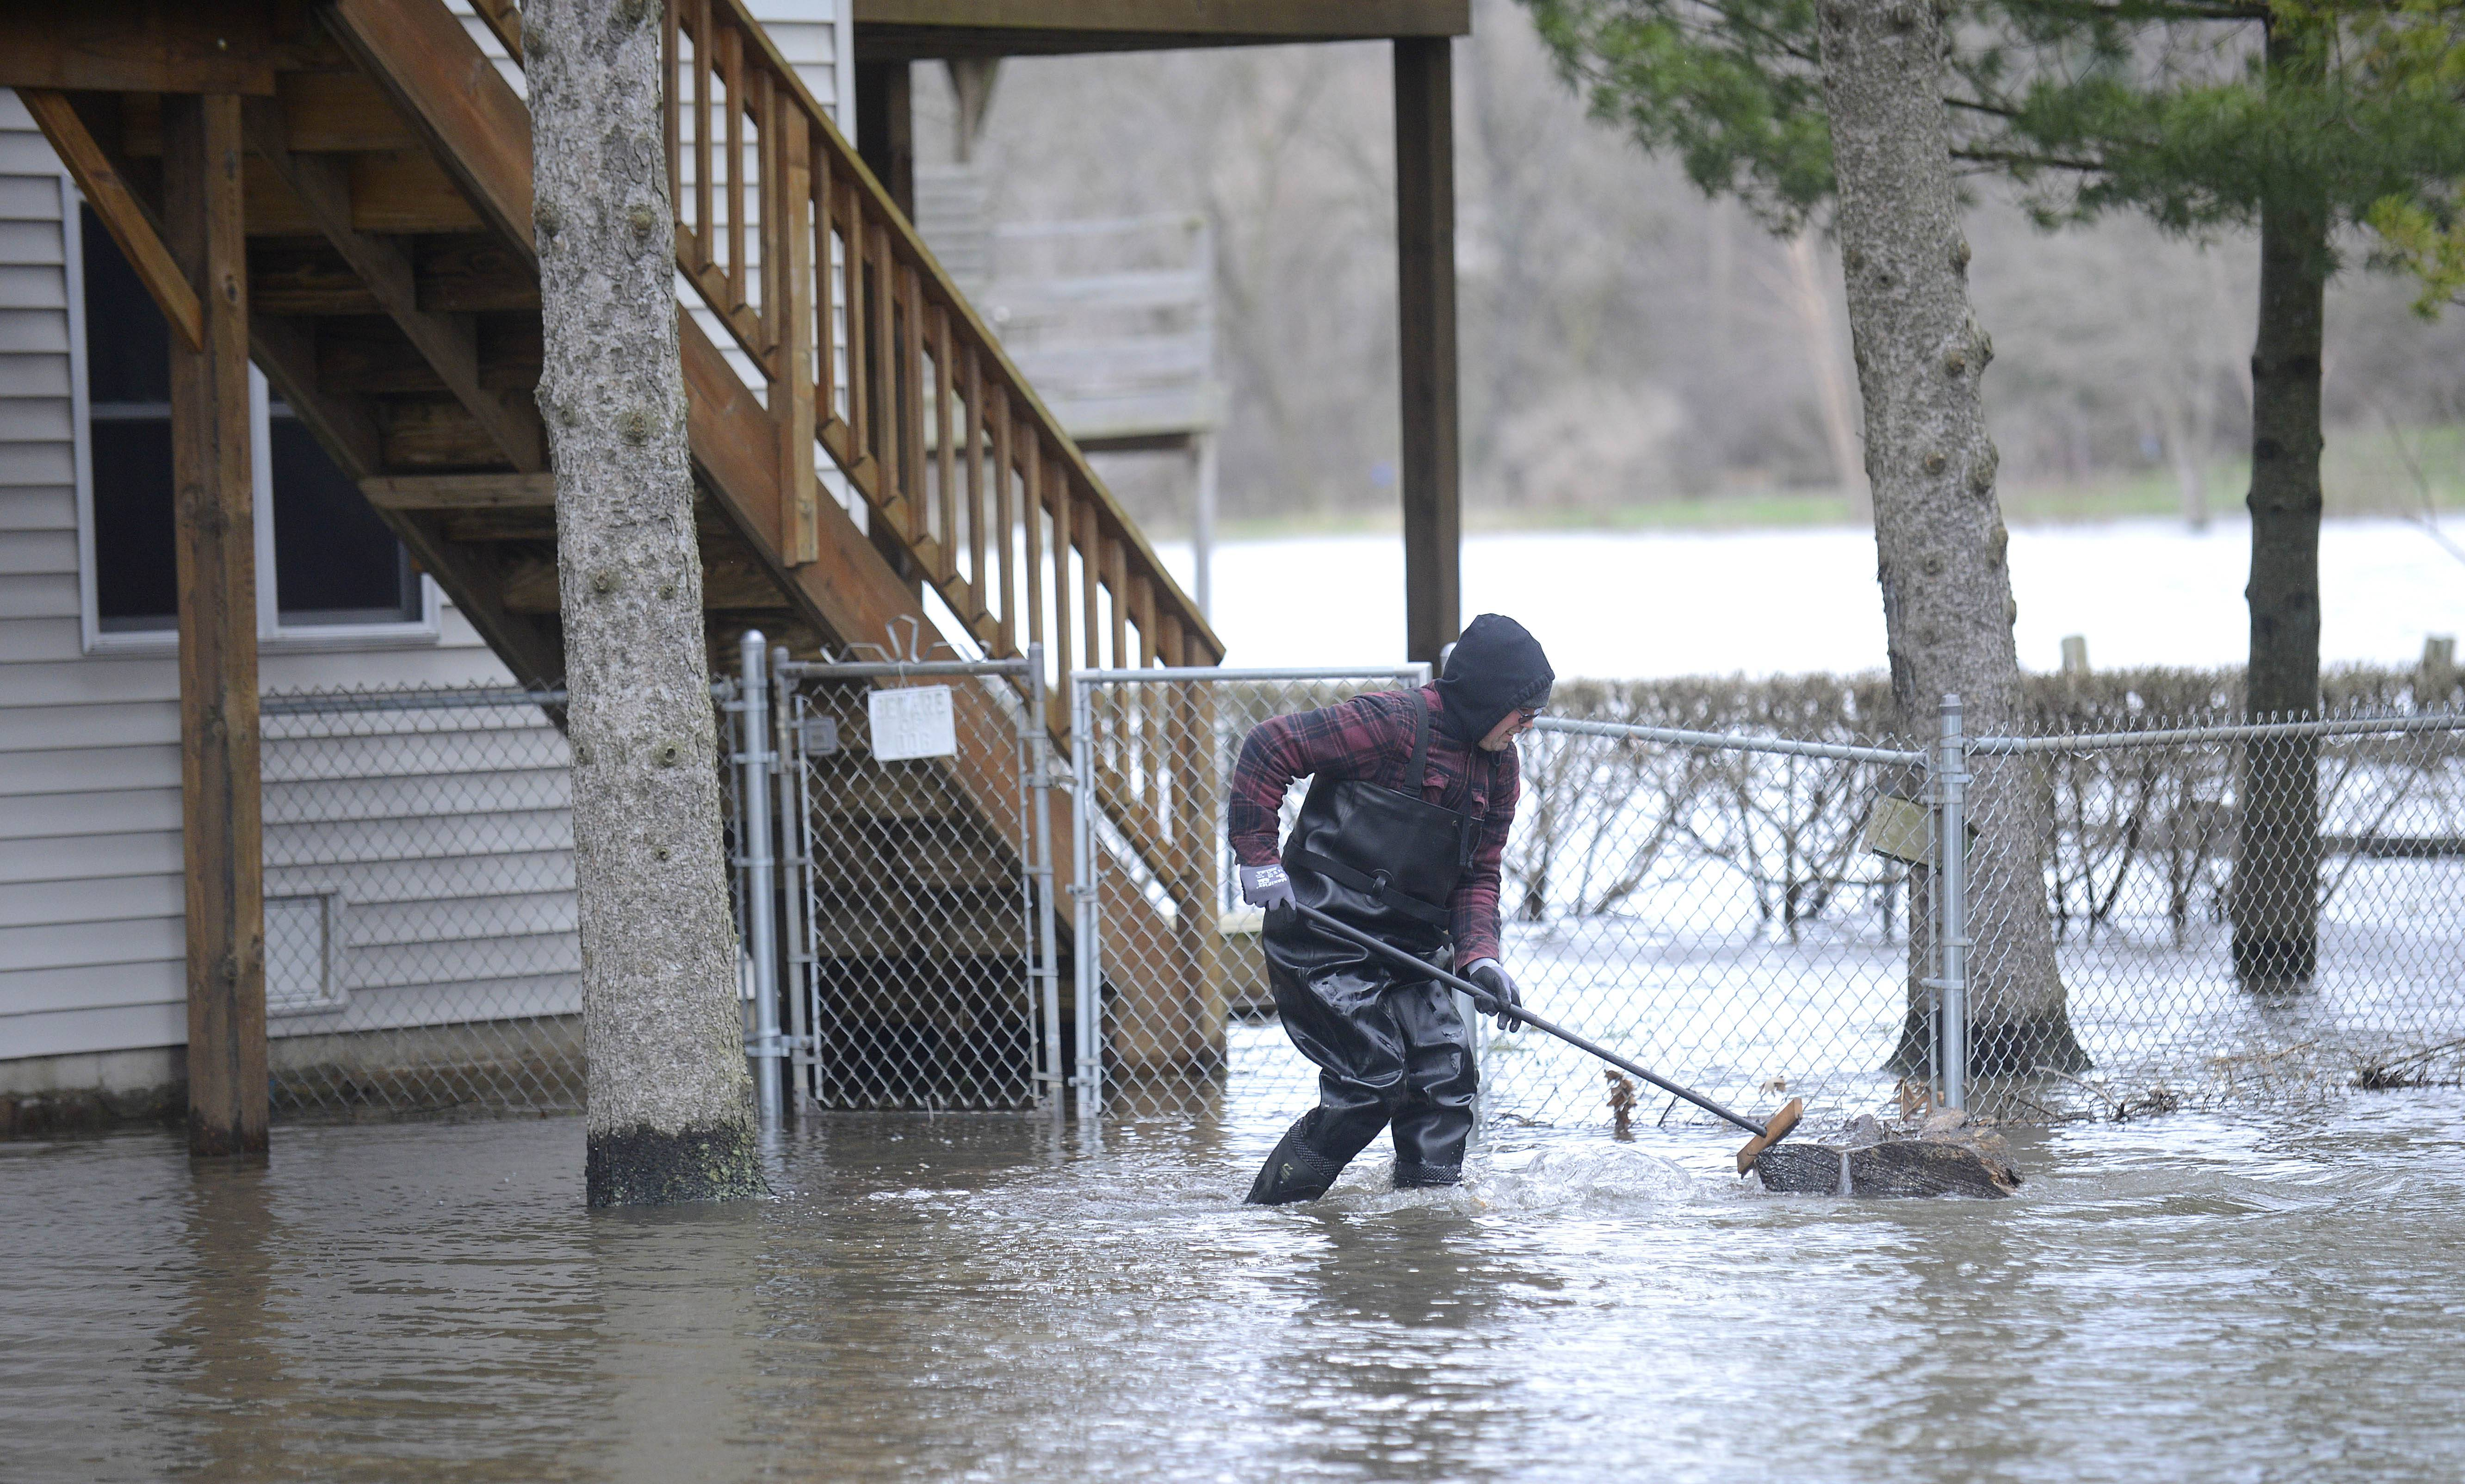 Mike Salmon of St. Charles Township walks back toward his house after removing large tree trunks from his lawn on Friday, April 19 after they washed up yesterday. Salmon has lived on Grove Ave. for the past 25 years and after the big flood in 2007, he raised the elevation of his home. He did not have any flooding problems inside his home this time.